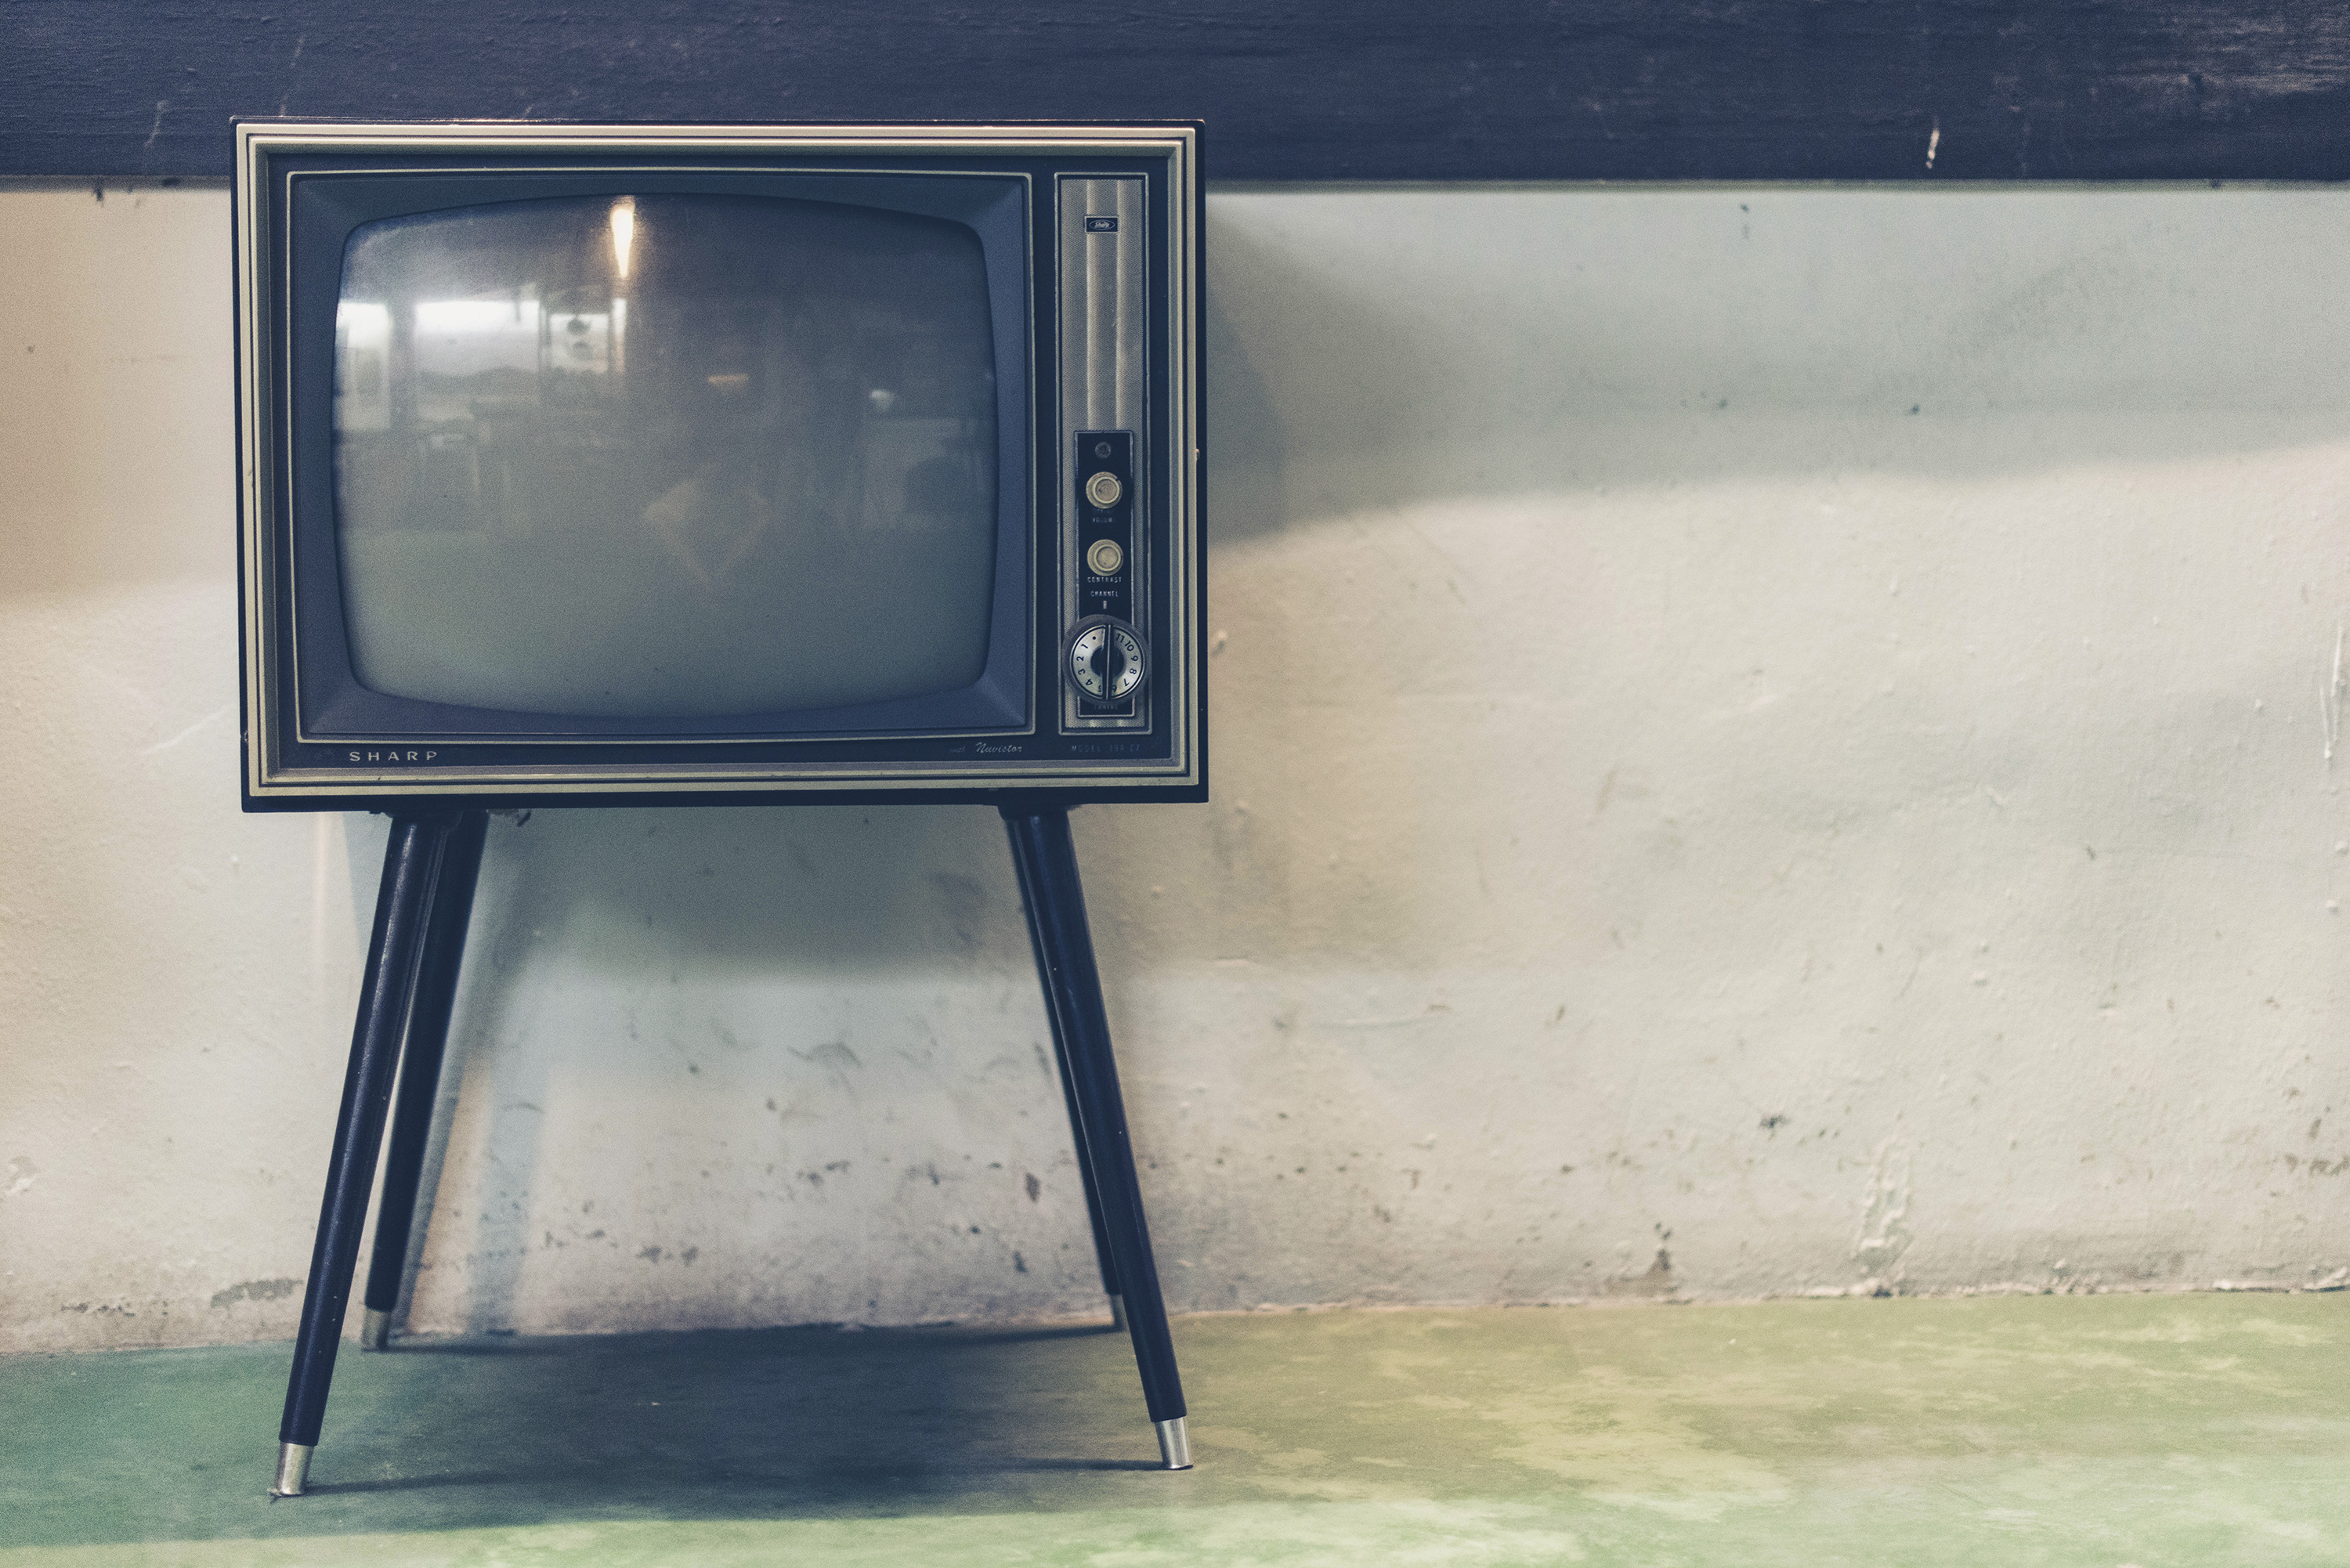 Gray vintage TV. Turning of the TV can help maintain good sleep.